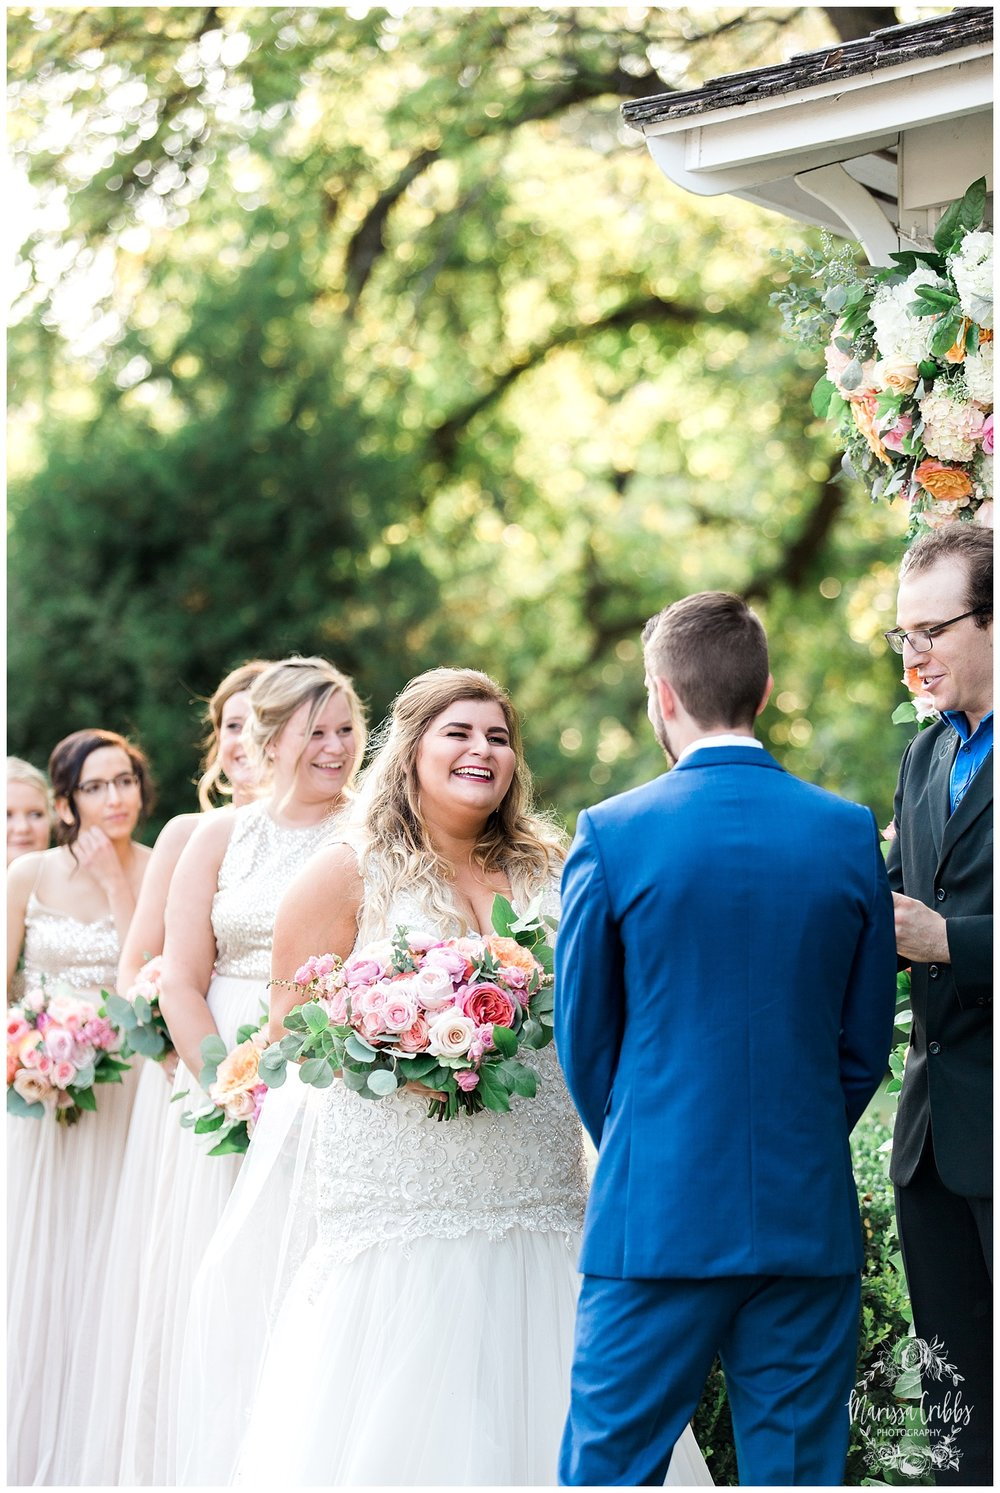 DANI & MICHAEL MARRIED | HAWTHORNE HOUSE WEDDING | MARISSA CRIBBS PHOTOGRAPHY_2662.jpg